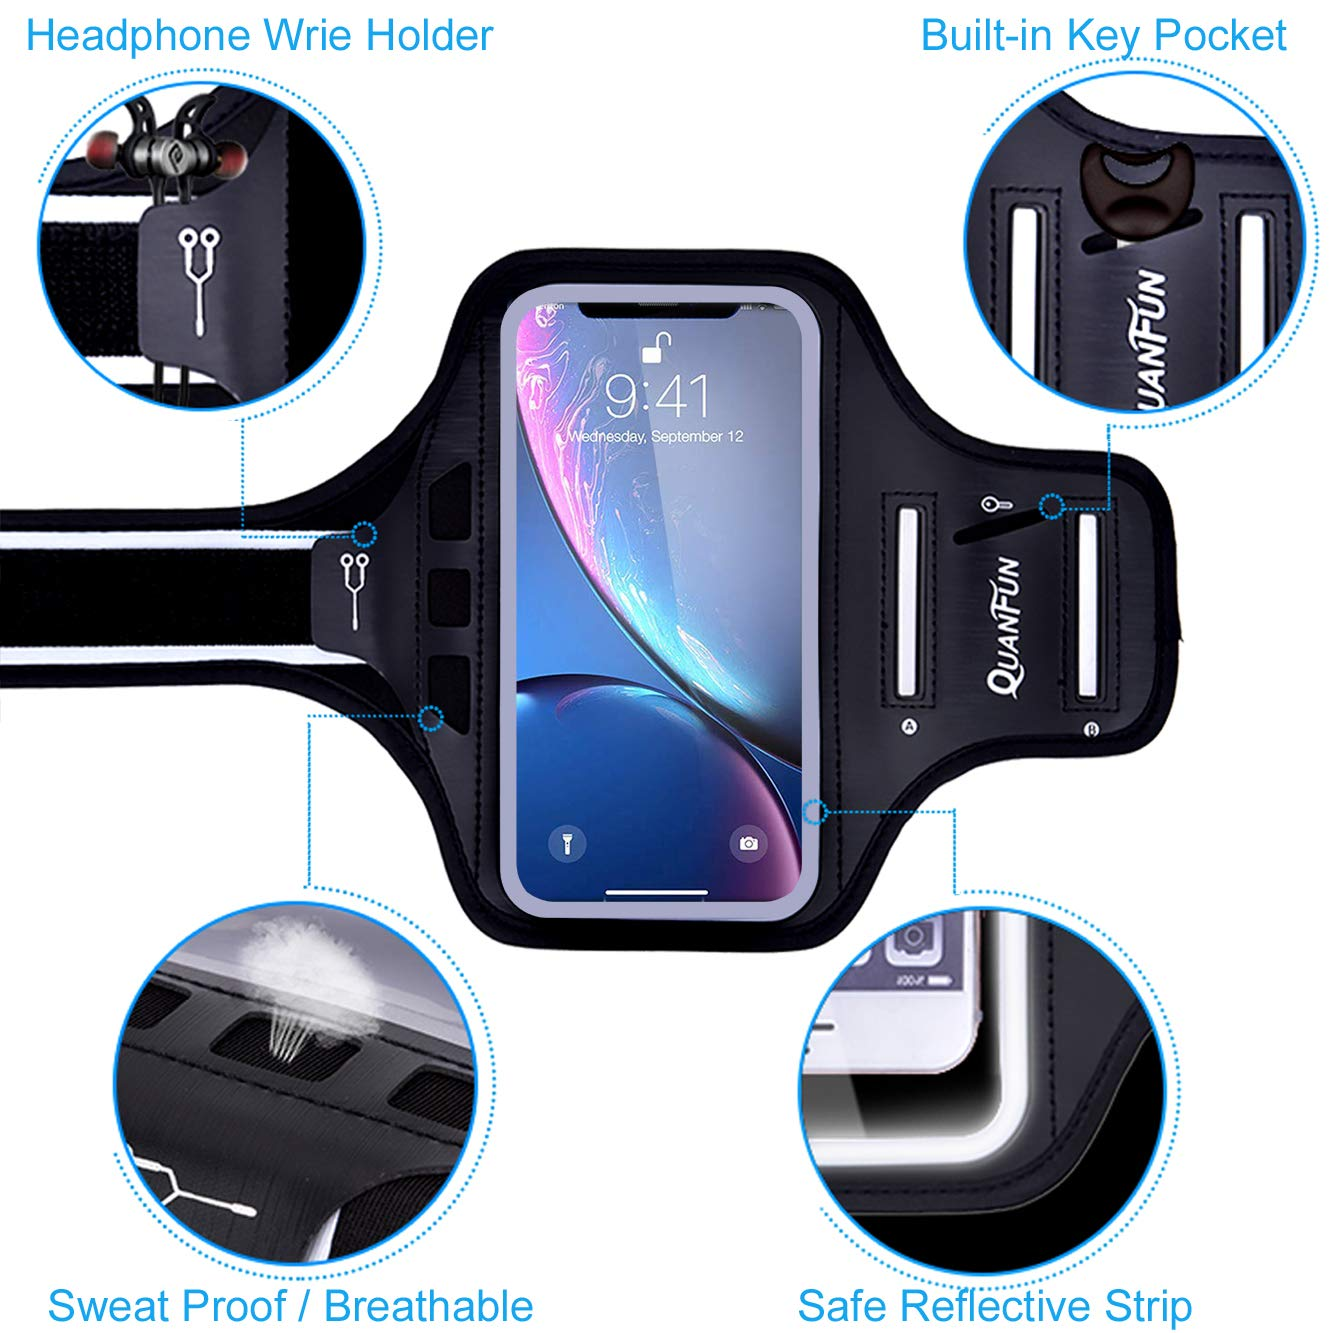 """Black // Rosy Pink fits 4.7/"""" to 6.5/"""" Cell Phones Phone Armband for iPhone 6 7 8 Plus X XS XR XSMax Waterproof Running Sports Armbands with Extra Extension Strap Holder for Galaxy S9 S8 S7 S6 Plus"""